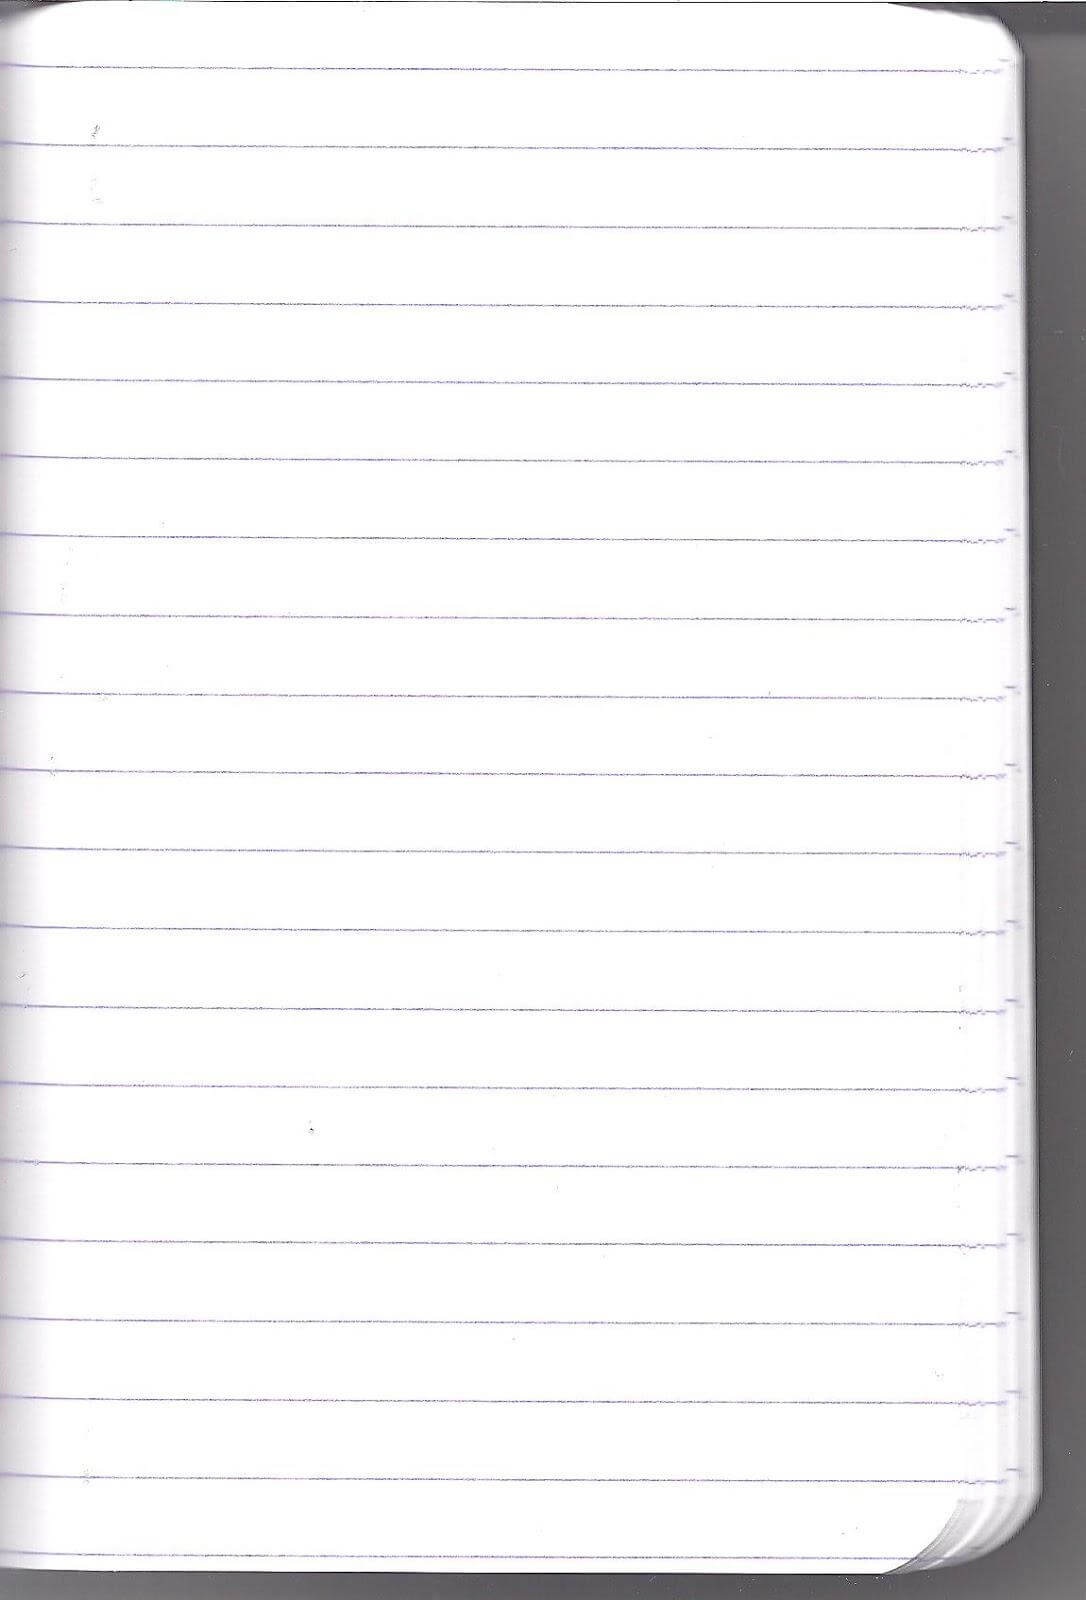 Notebook Paper Word Template – Top Image Gallery Site Inside Notebook Paper Template For Word